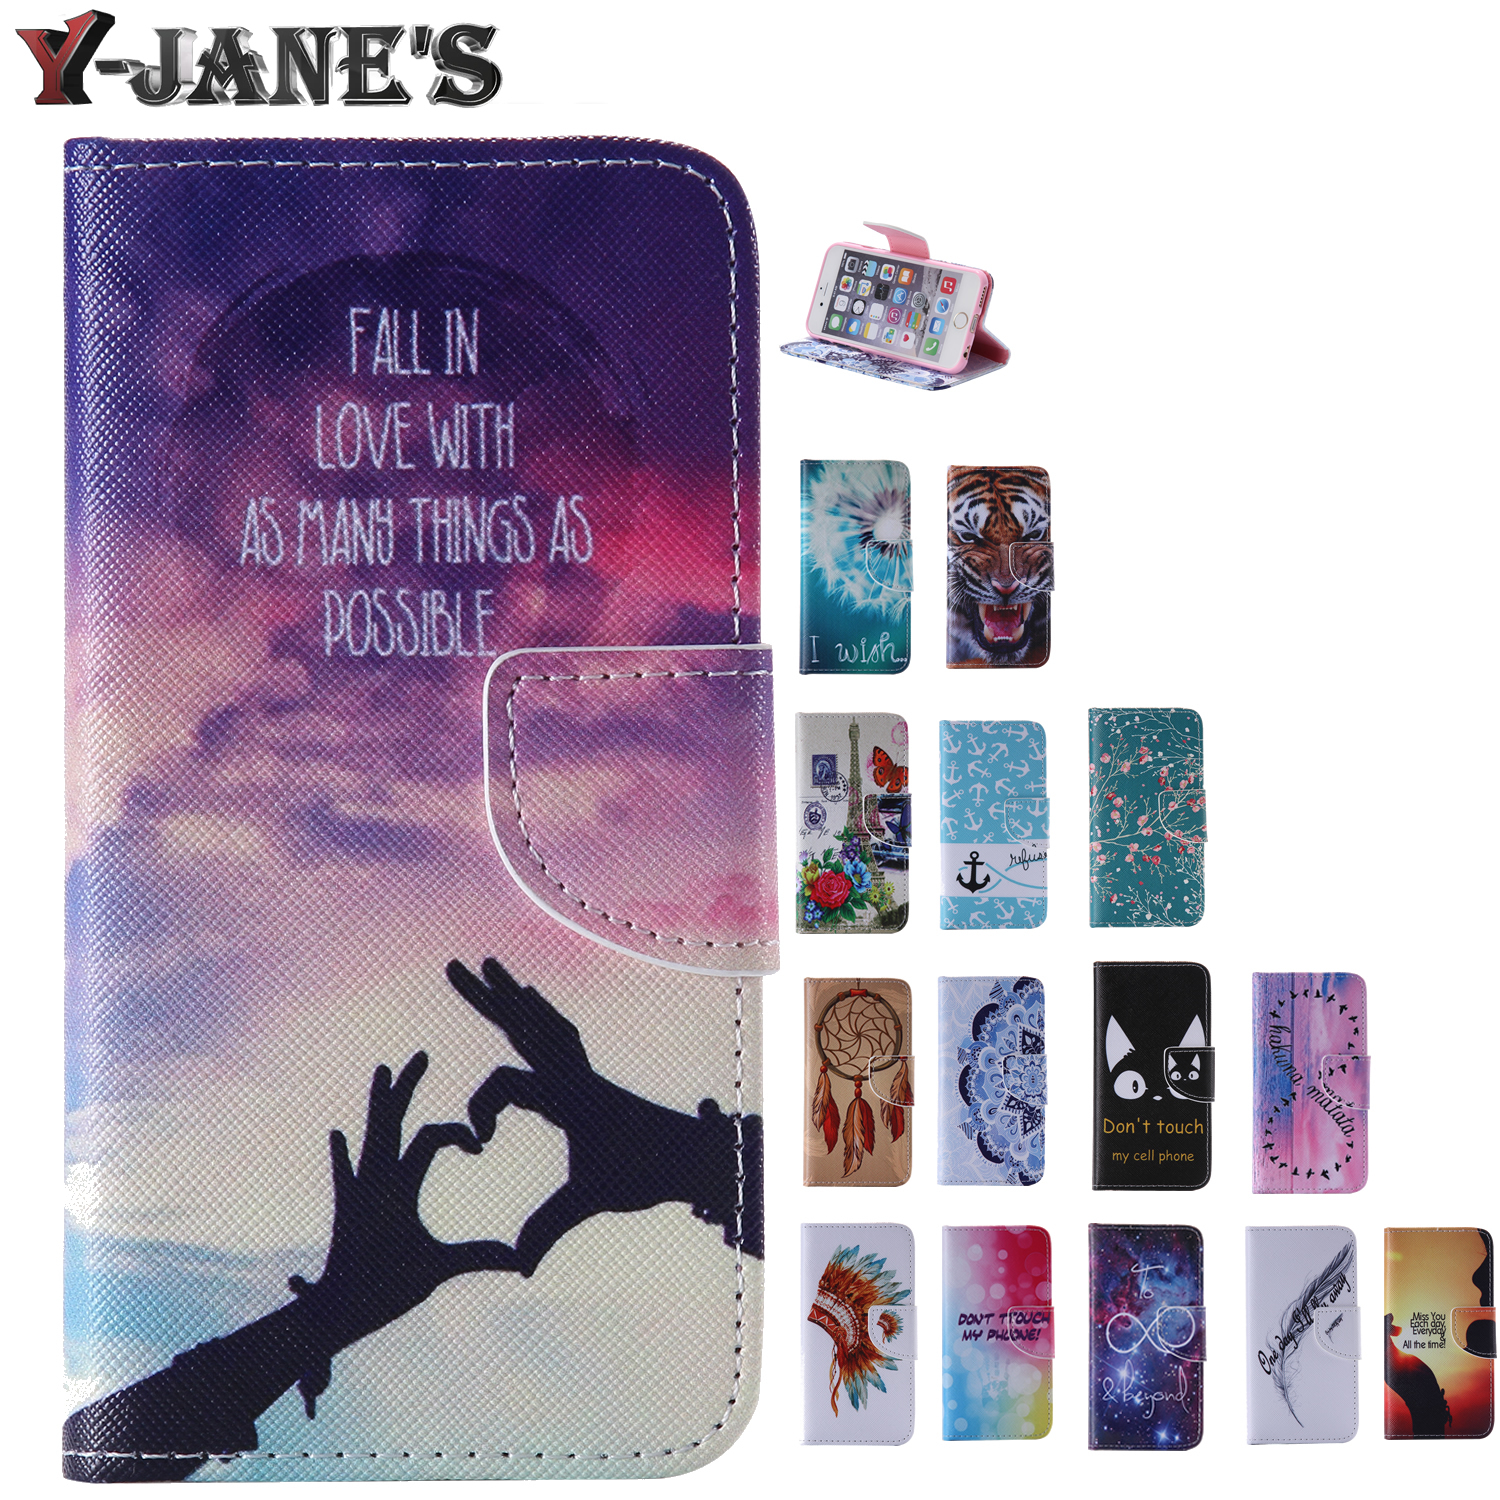 Painted Style Leather Protector TPU Cover Case with Wallet Card Slots Phone Case For Samsung Galaxy S4 Mini i9190 Cases